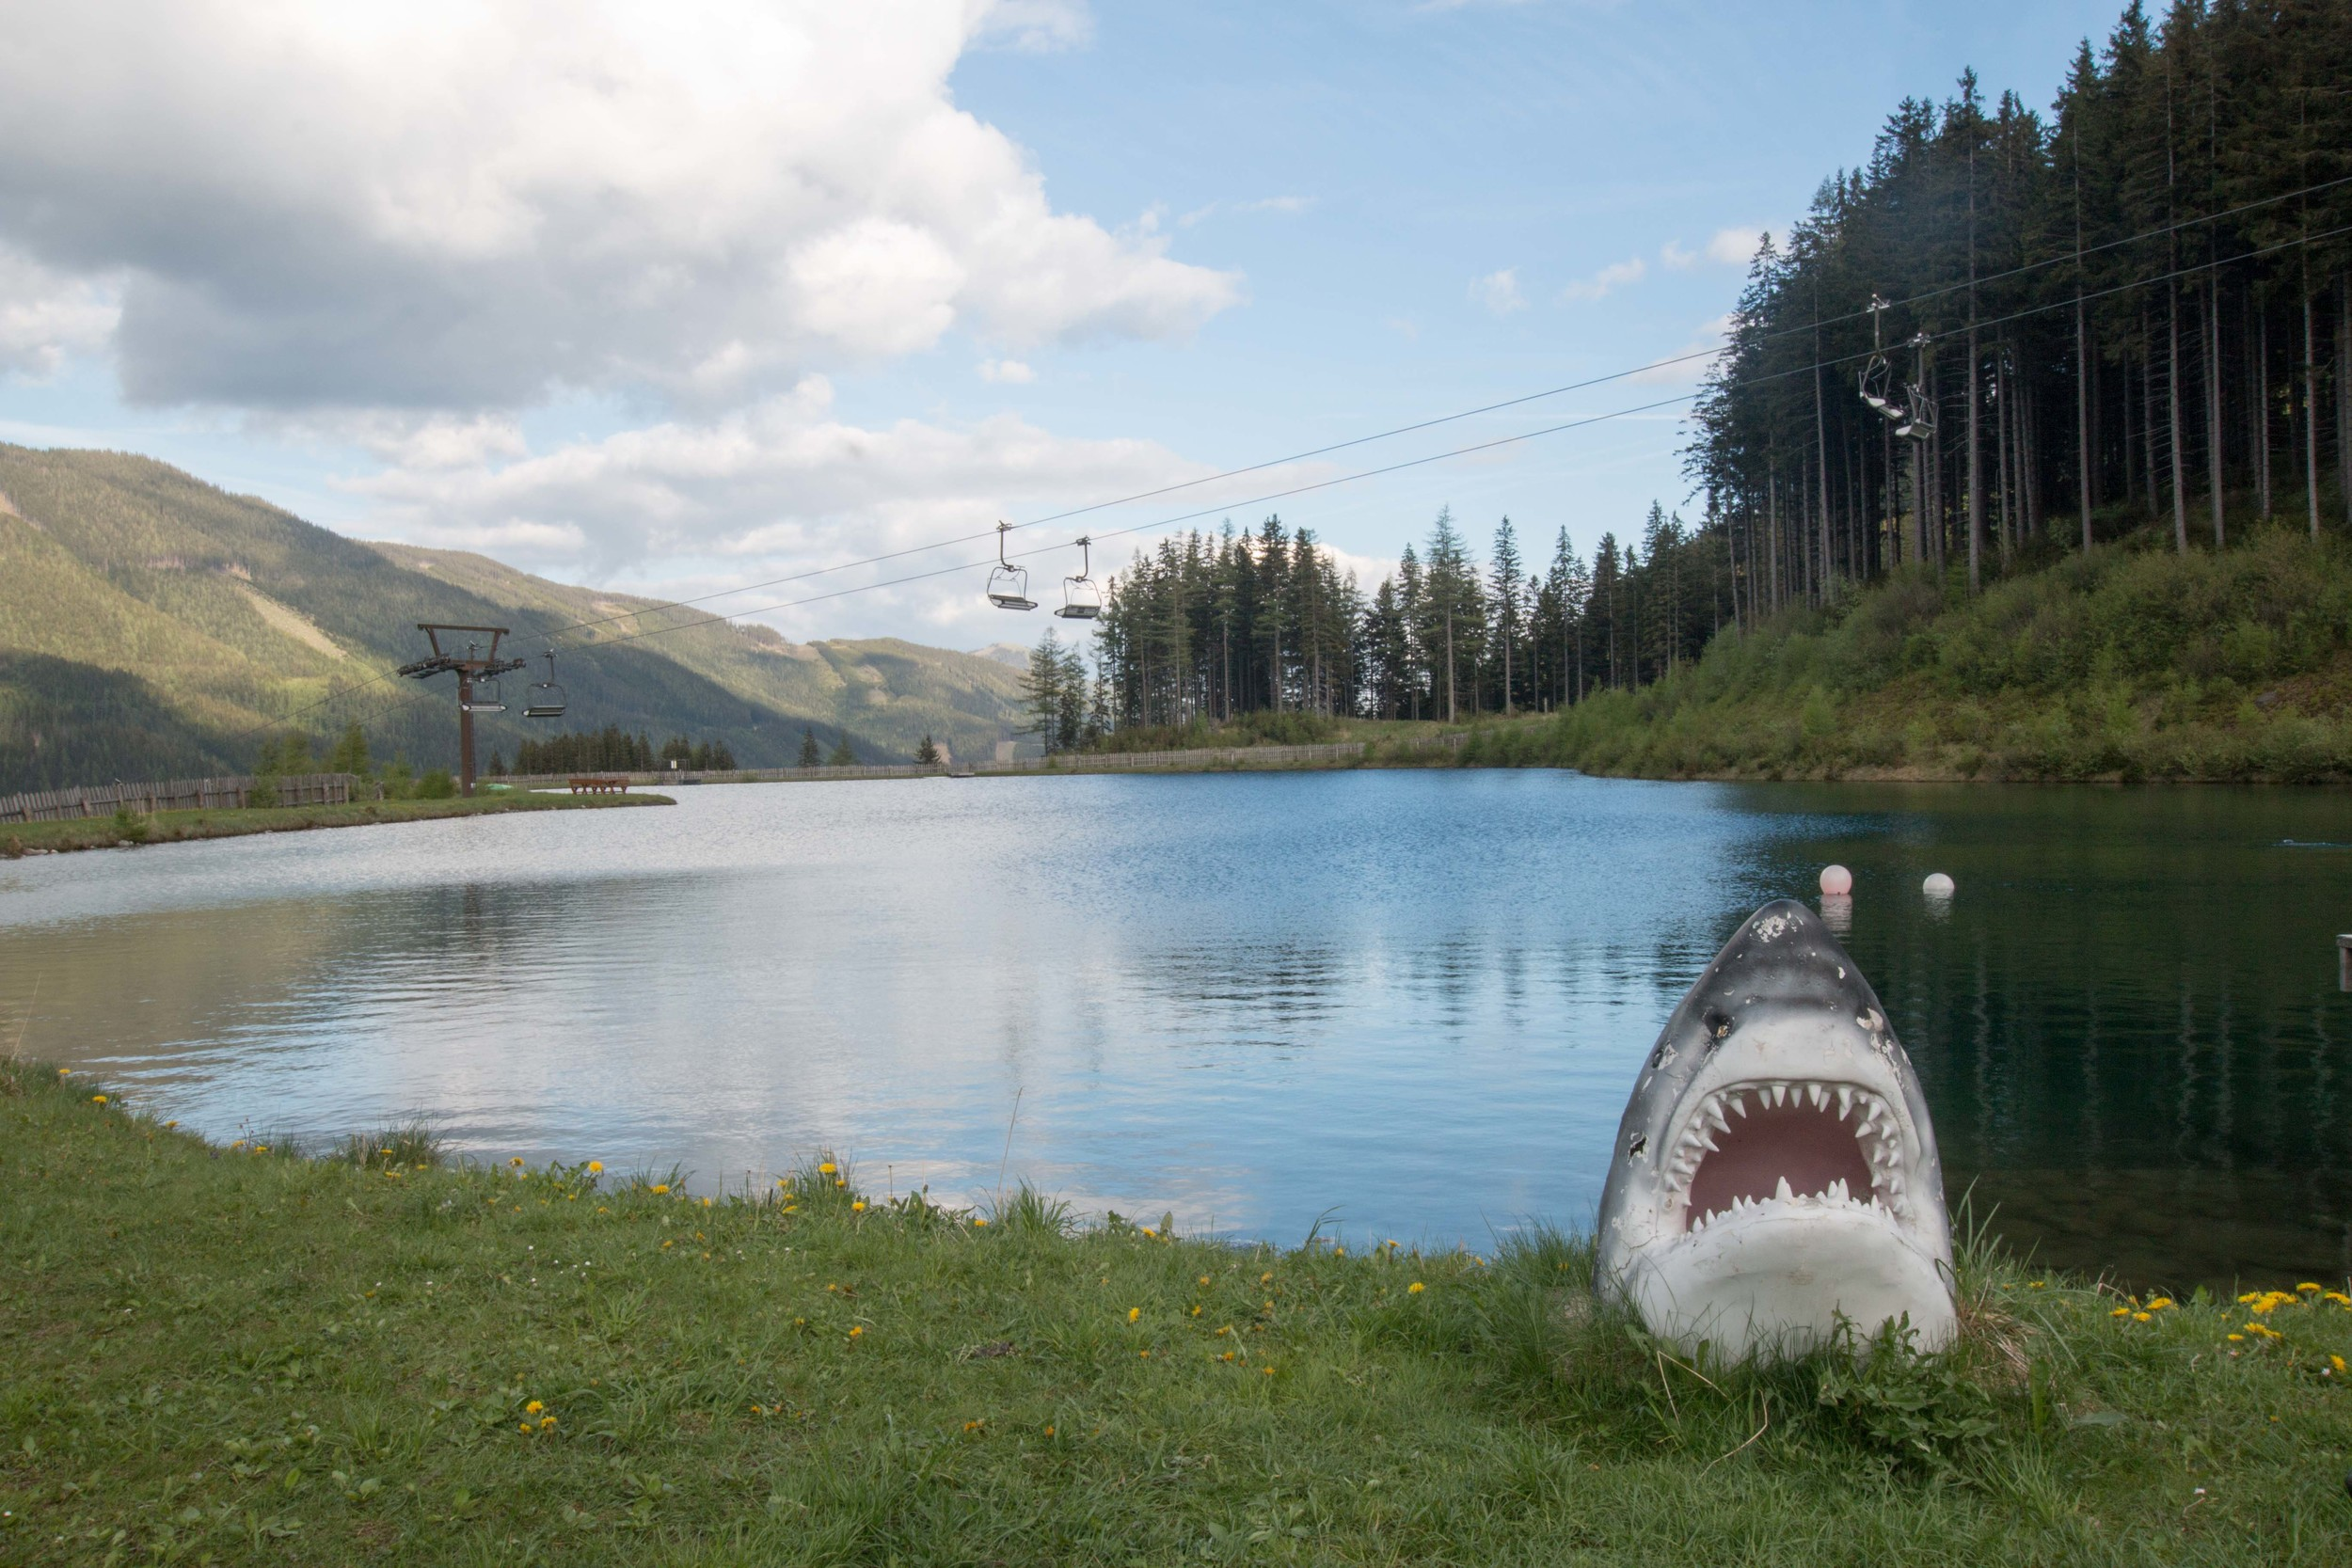 Contrary to what is shown here, the lake is, indeed, shark free.